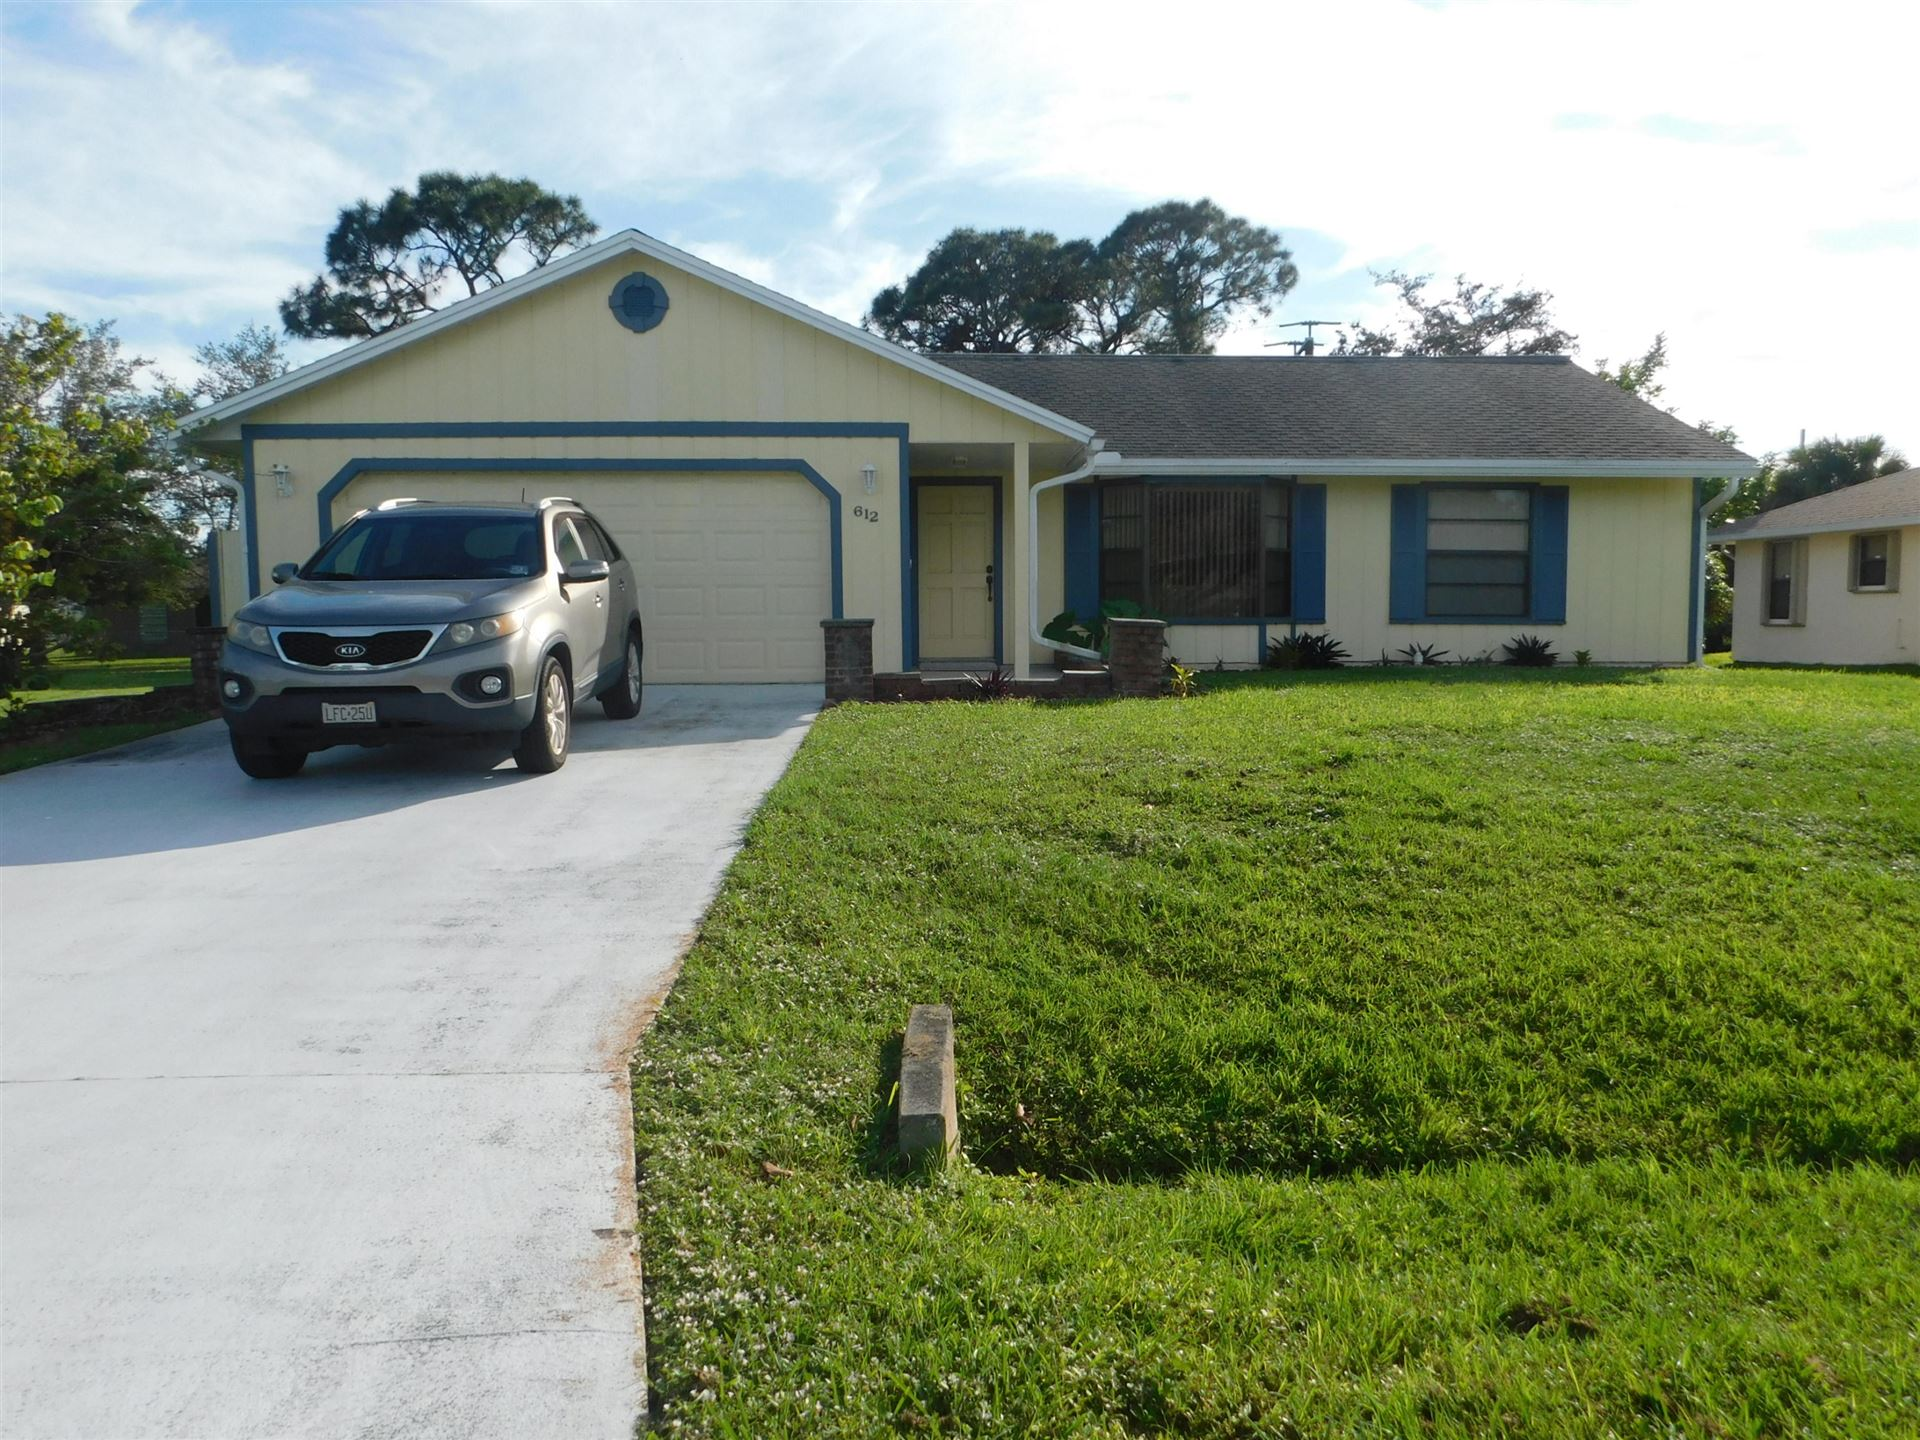 612 SE Crescent Avenue, Port Saint Lucie, FL 34984 - #: RX-10597711